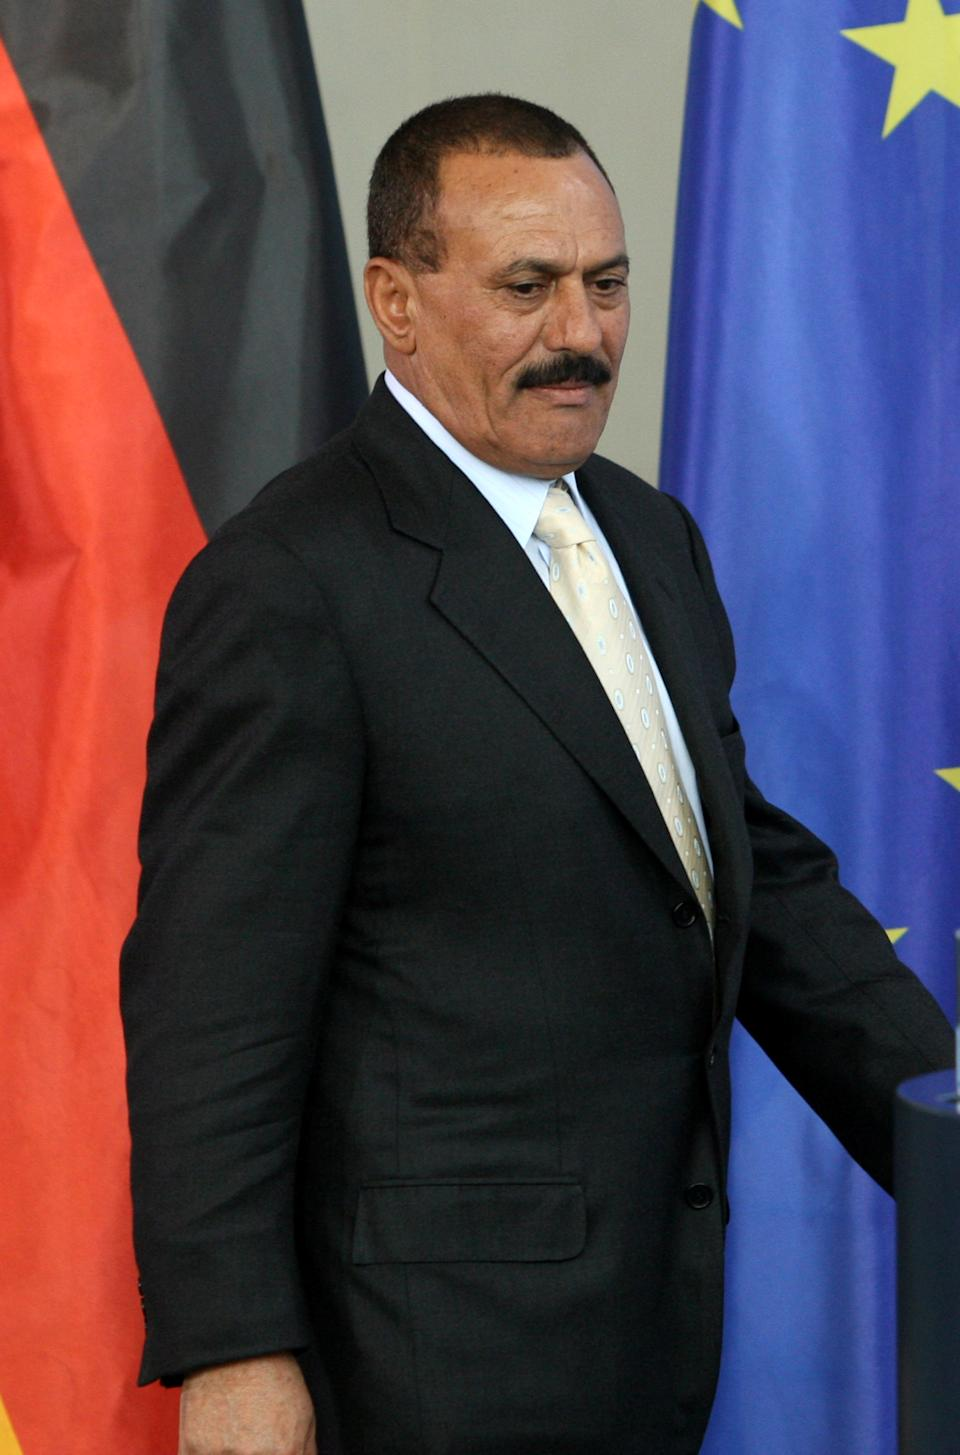 <p><b>Ali Abdullah Saleh</b></p> <br><p>Former Yemeni President Ali Abdullah Saleh ruled over the country for 30 years until he recently ceded power on his own terms. He is said to be worth around $32 billion.</p>